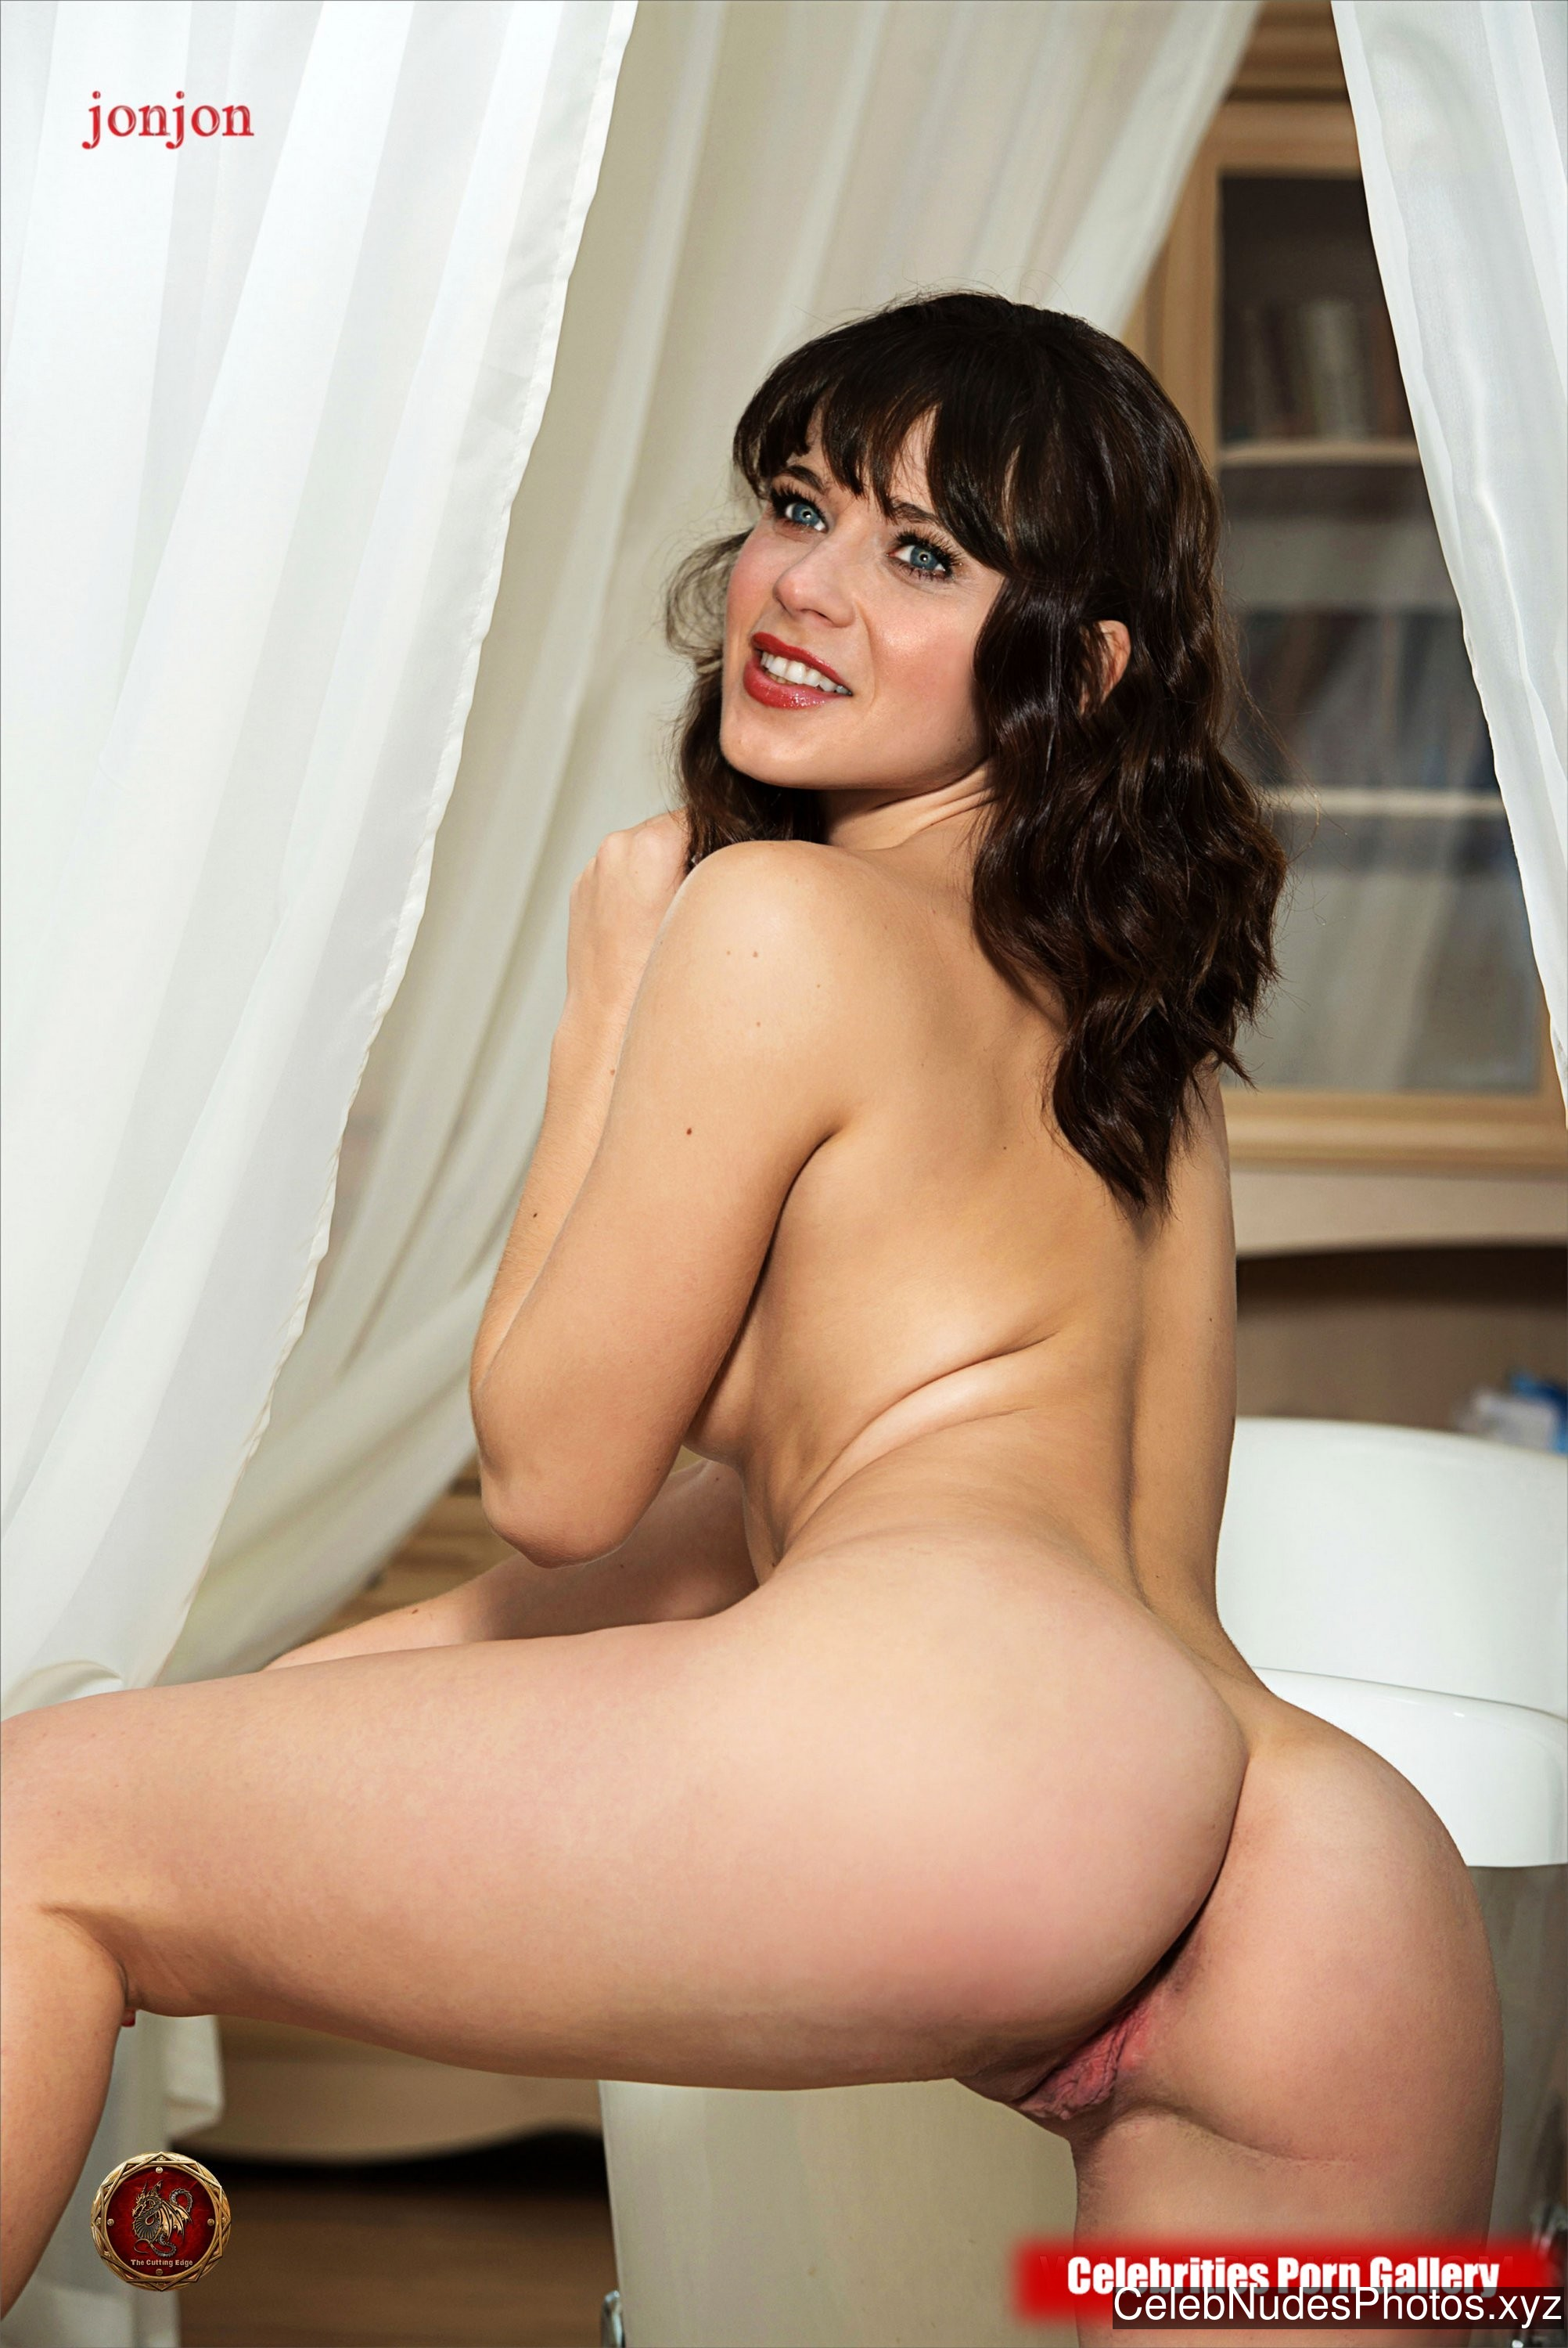 Zooey Deschanel Celebrity Leaked Nude Photo sexy 22